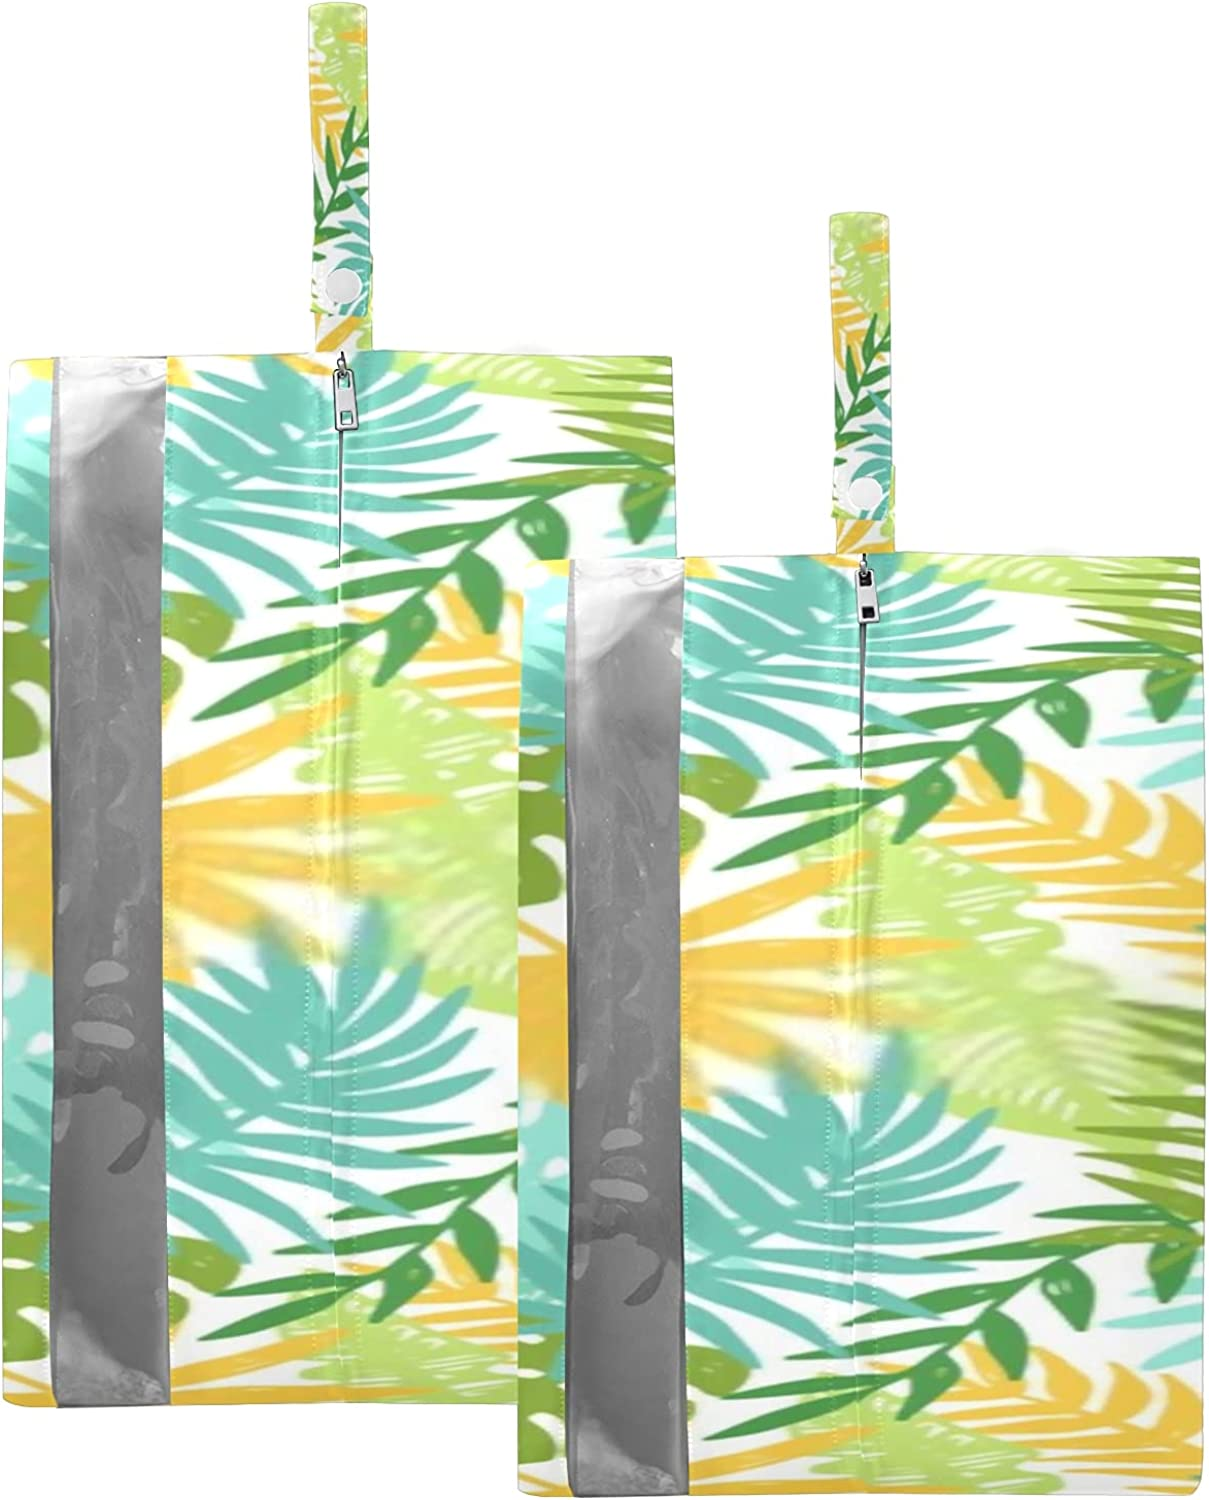 Waterproof Travel Large-scale sale Shoe Bag Pack Phoenix Mall Colorful Z Plants Hawaii Hand An